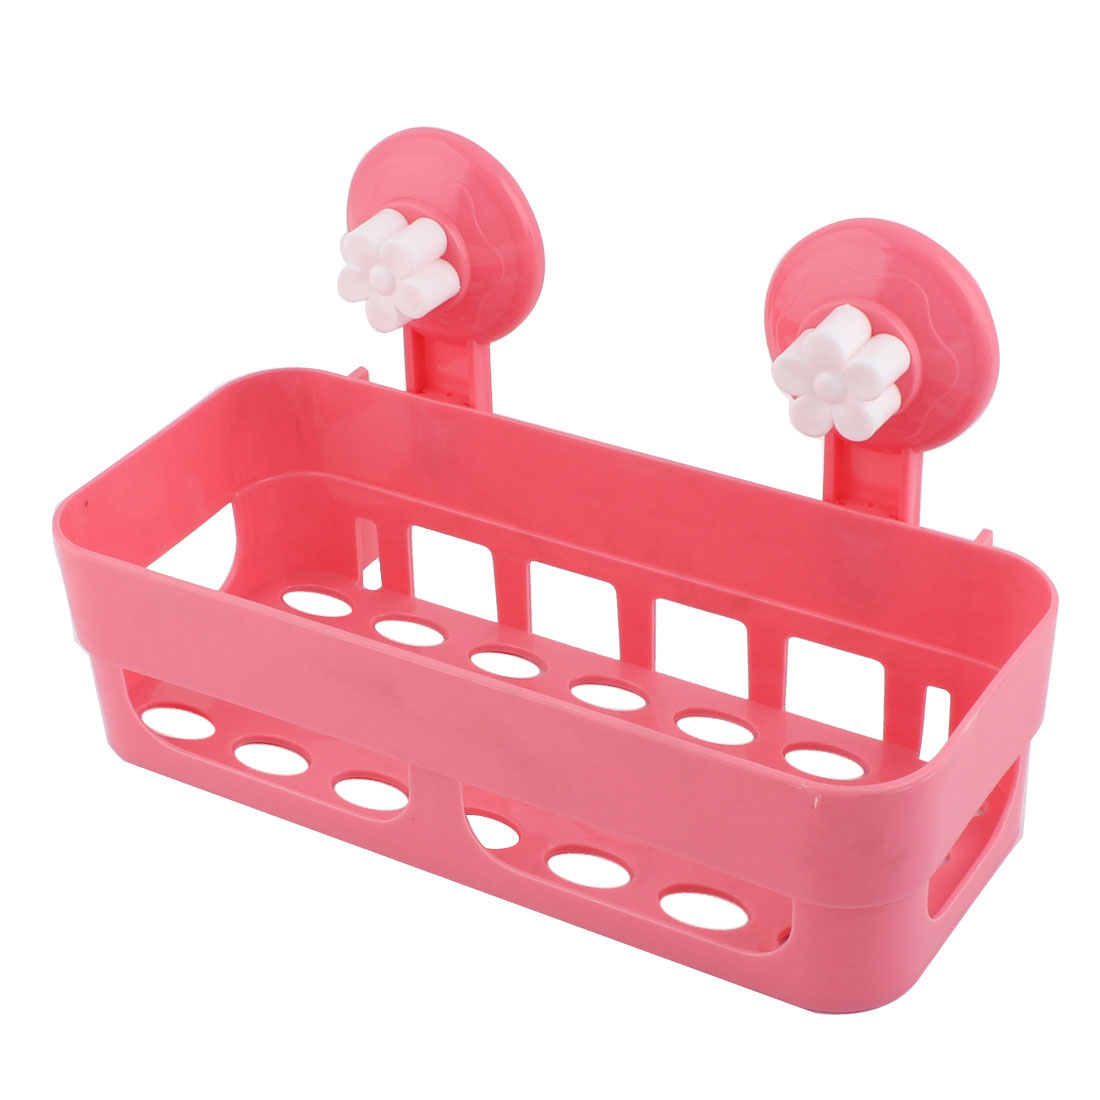 Bathroom Kitchen Rectangle Plastic Commodity Organize Suction Cup Shelf Holder Pink